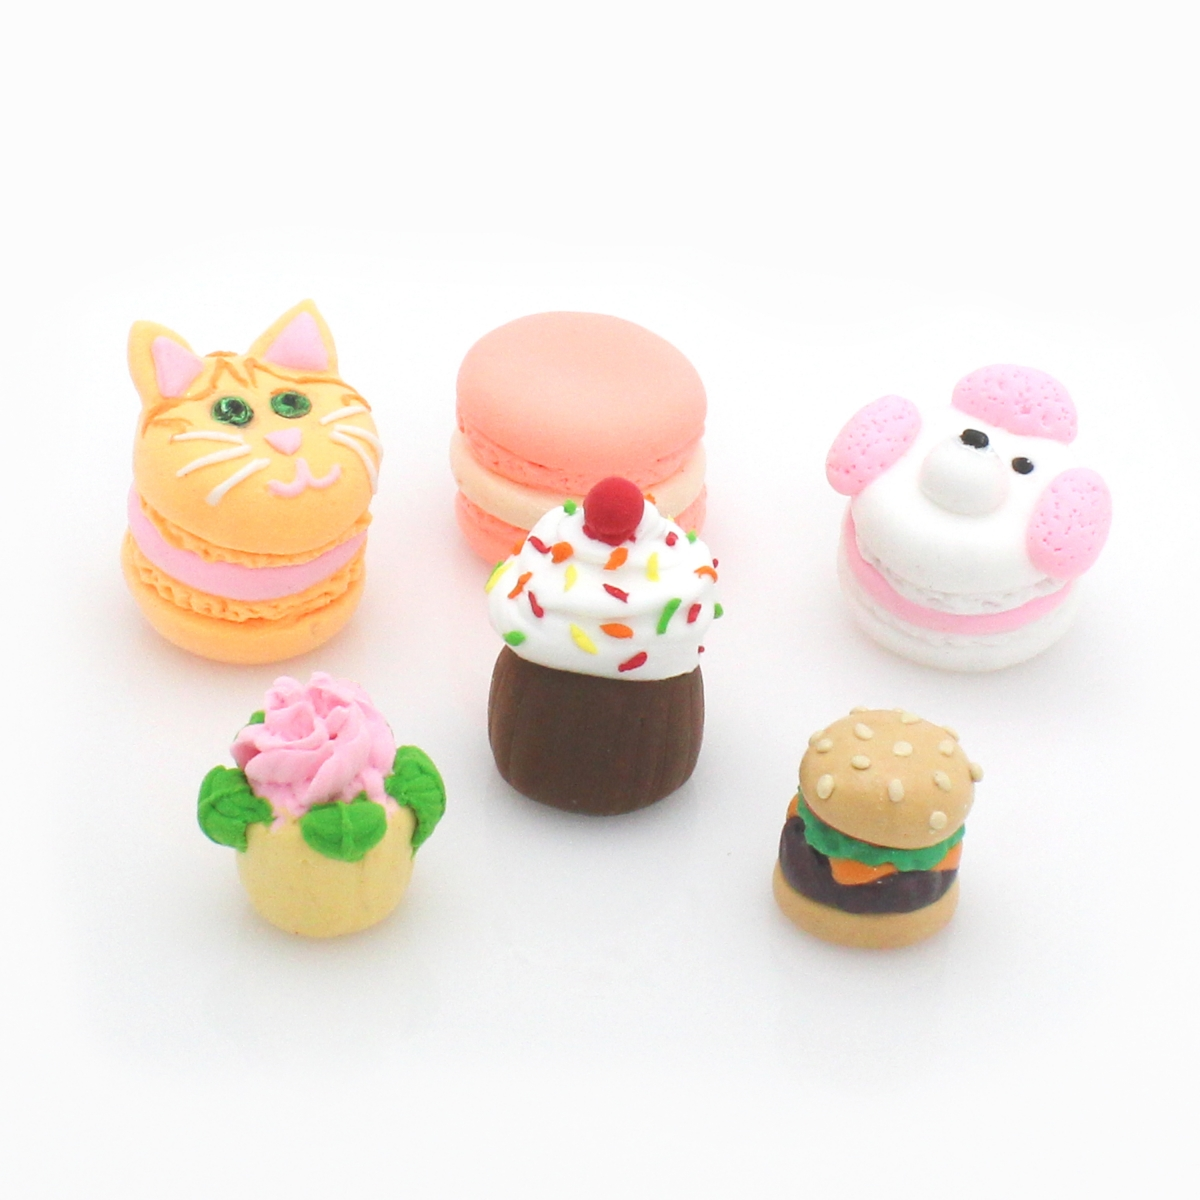 Clay Macarons, Cupcakes and Burger